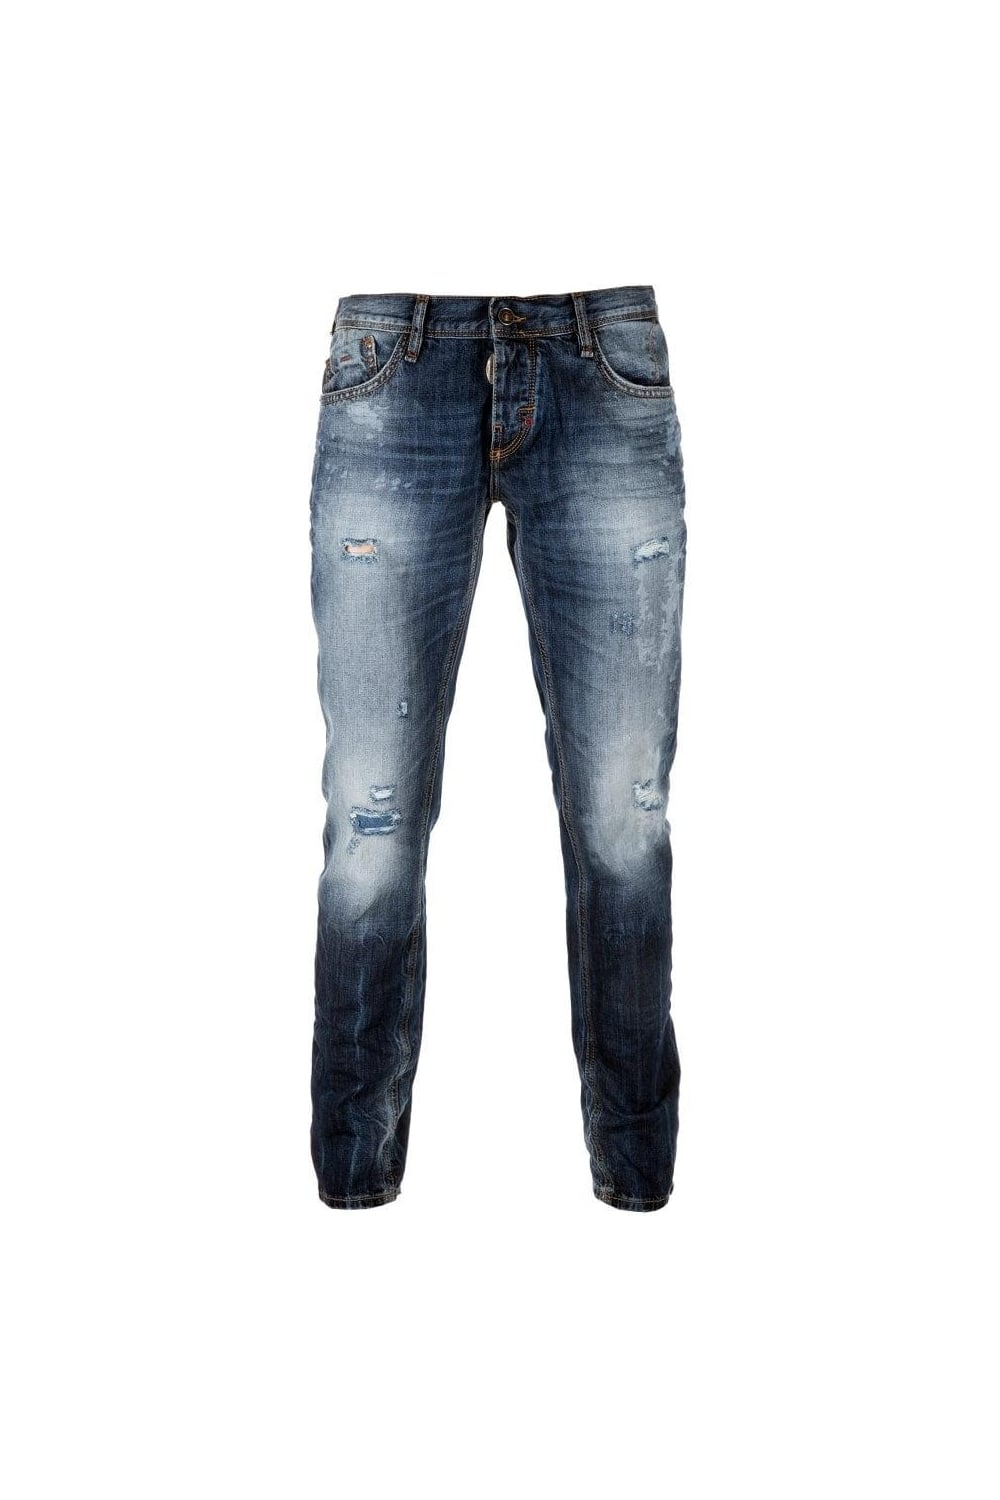 17392f02388 Antony Morato Super Slim Paint Splat Jeans Blue